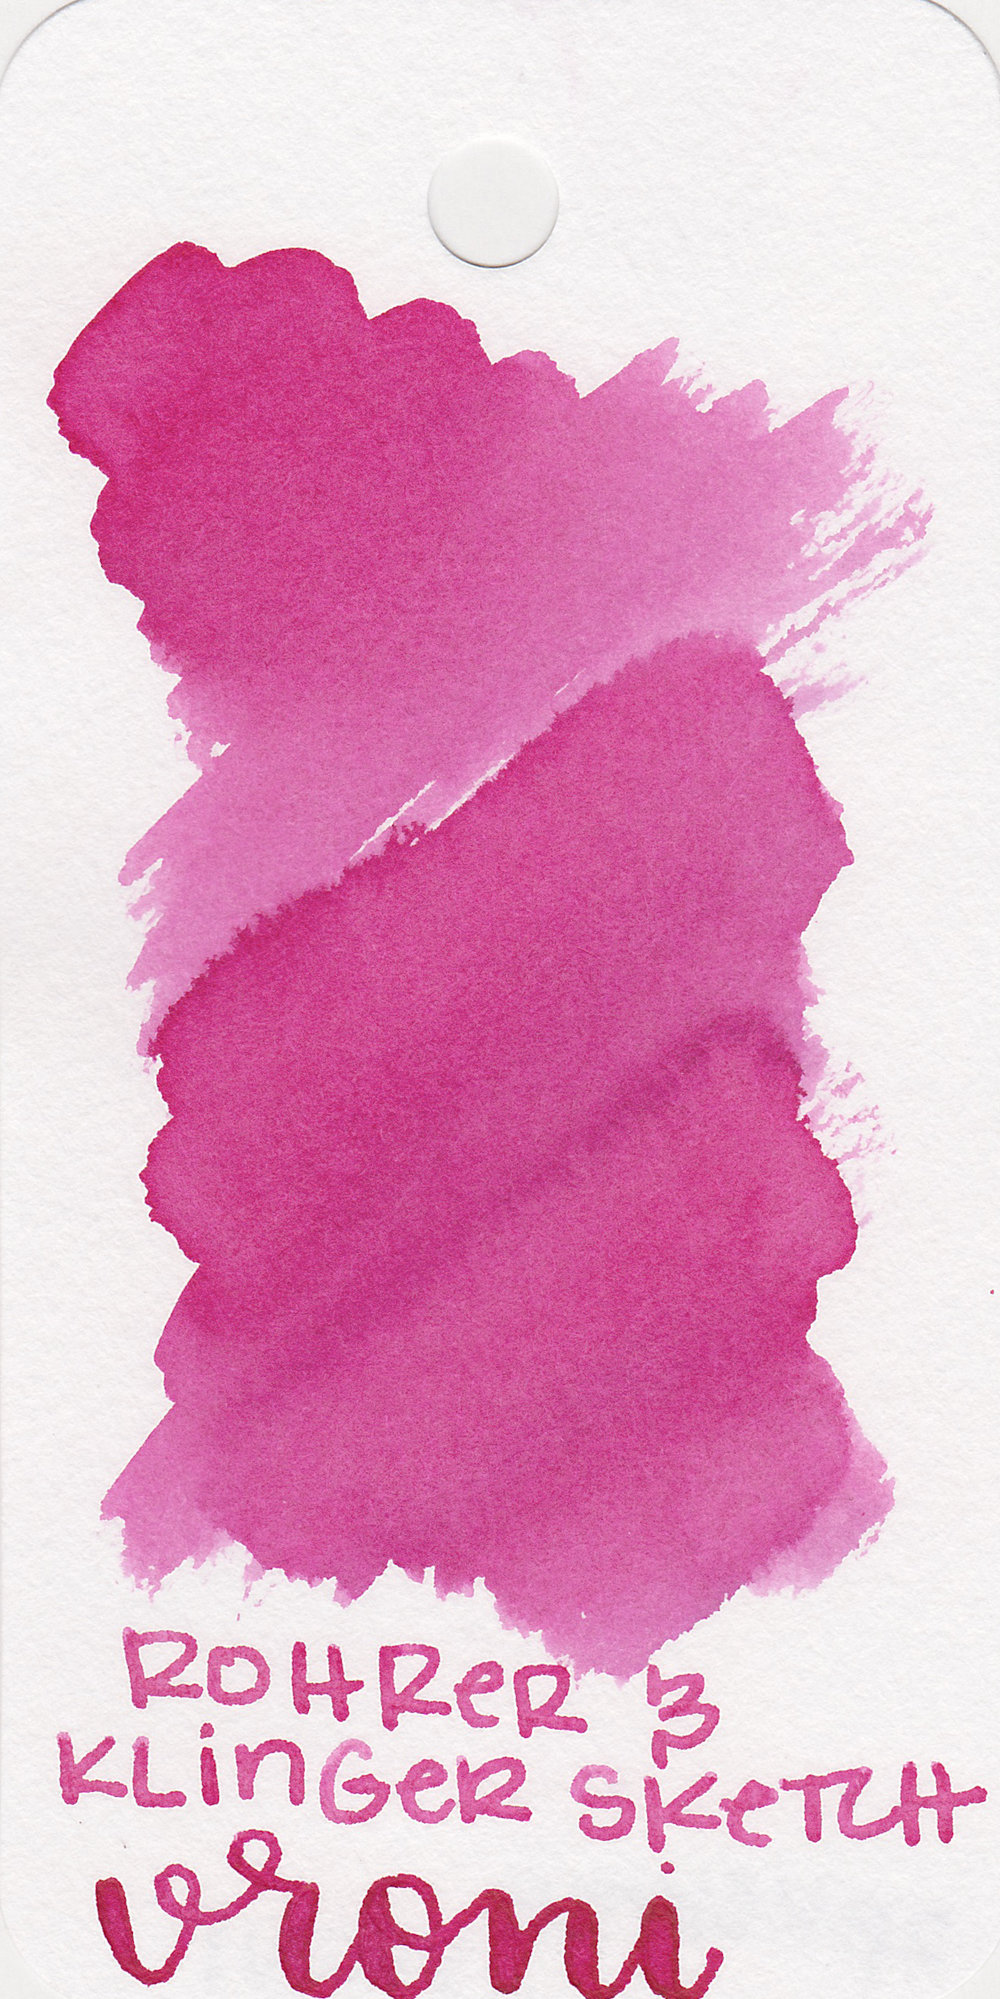 The color: - Vroni is a medium pink with shading.